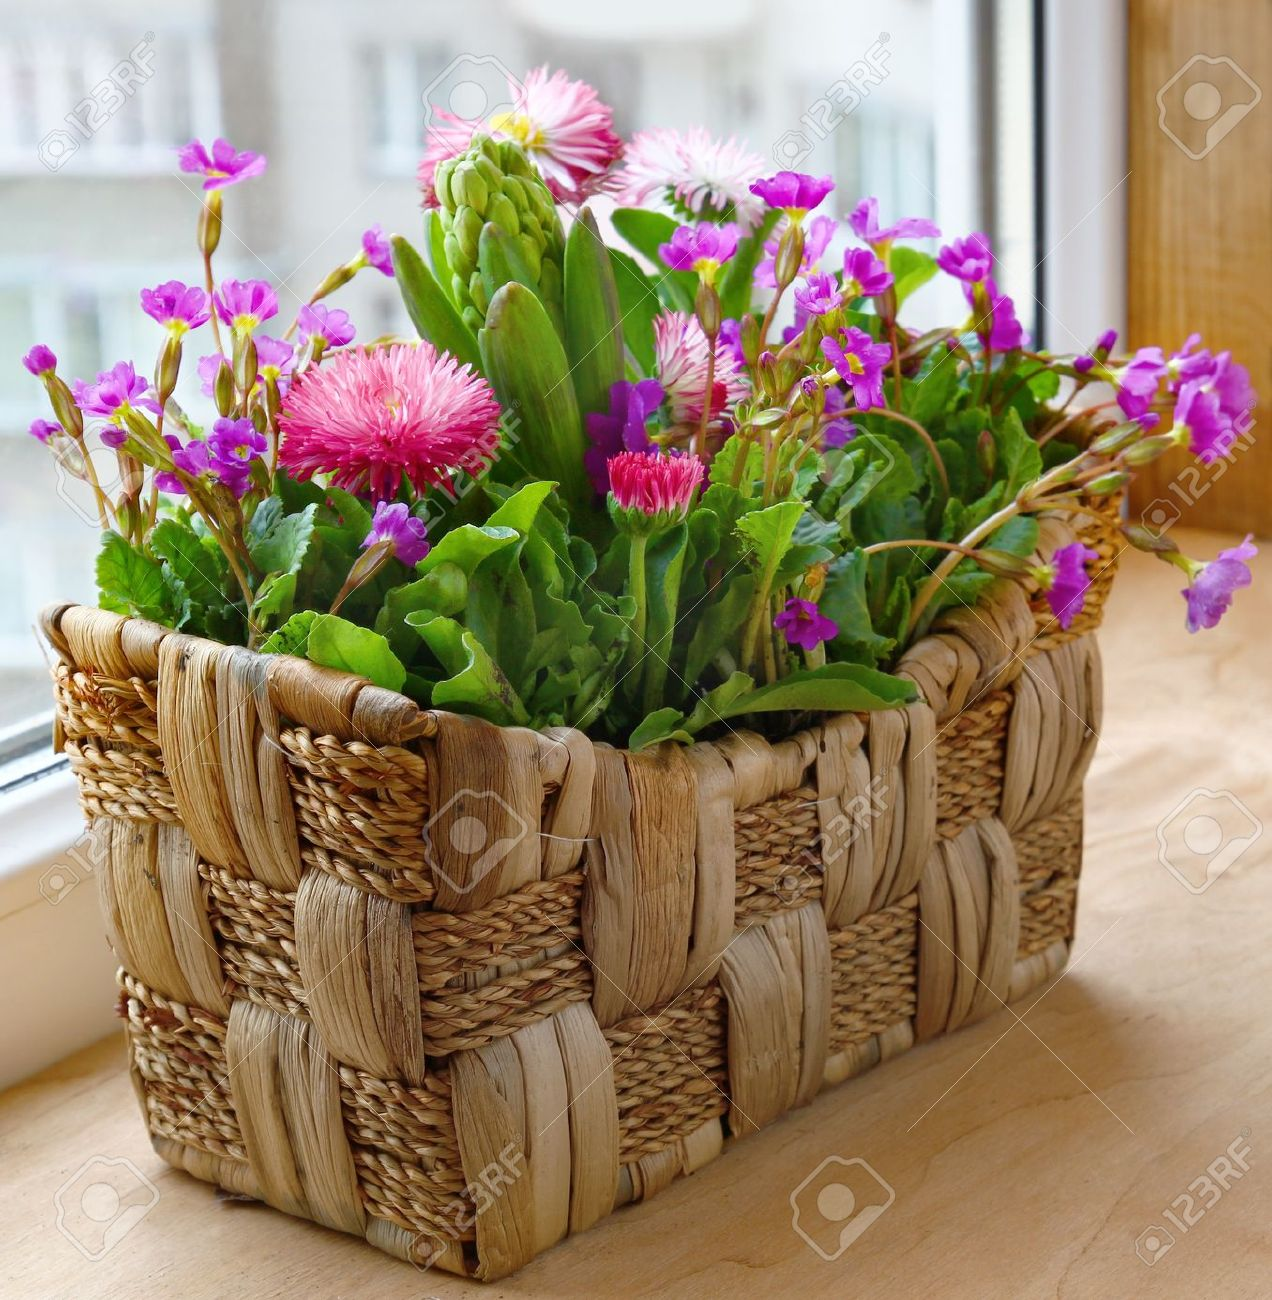 Spring Flowers In A Small Basket On A Balcony Stock Photo Picture